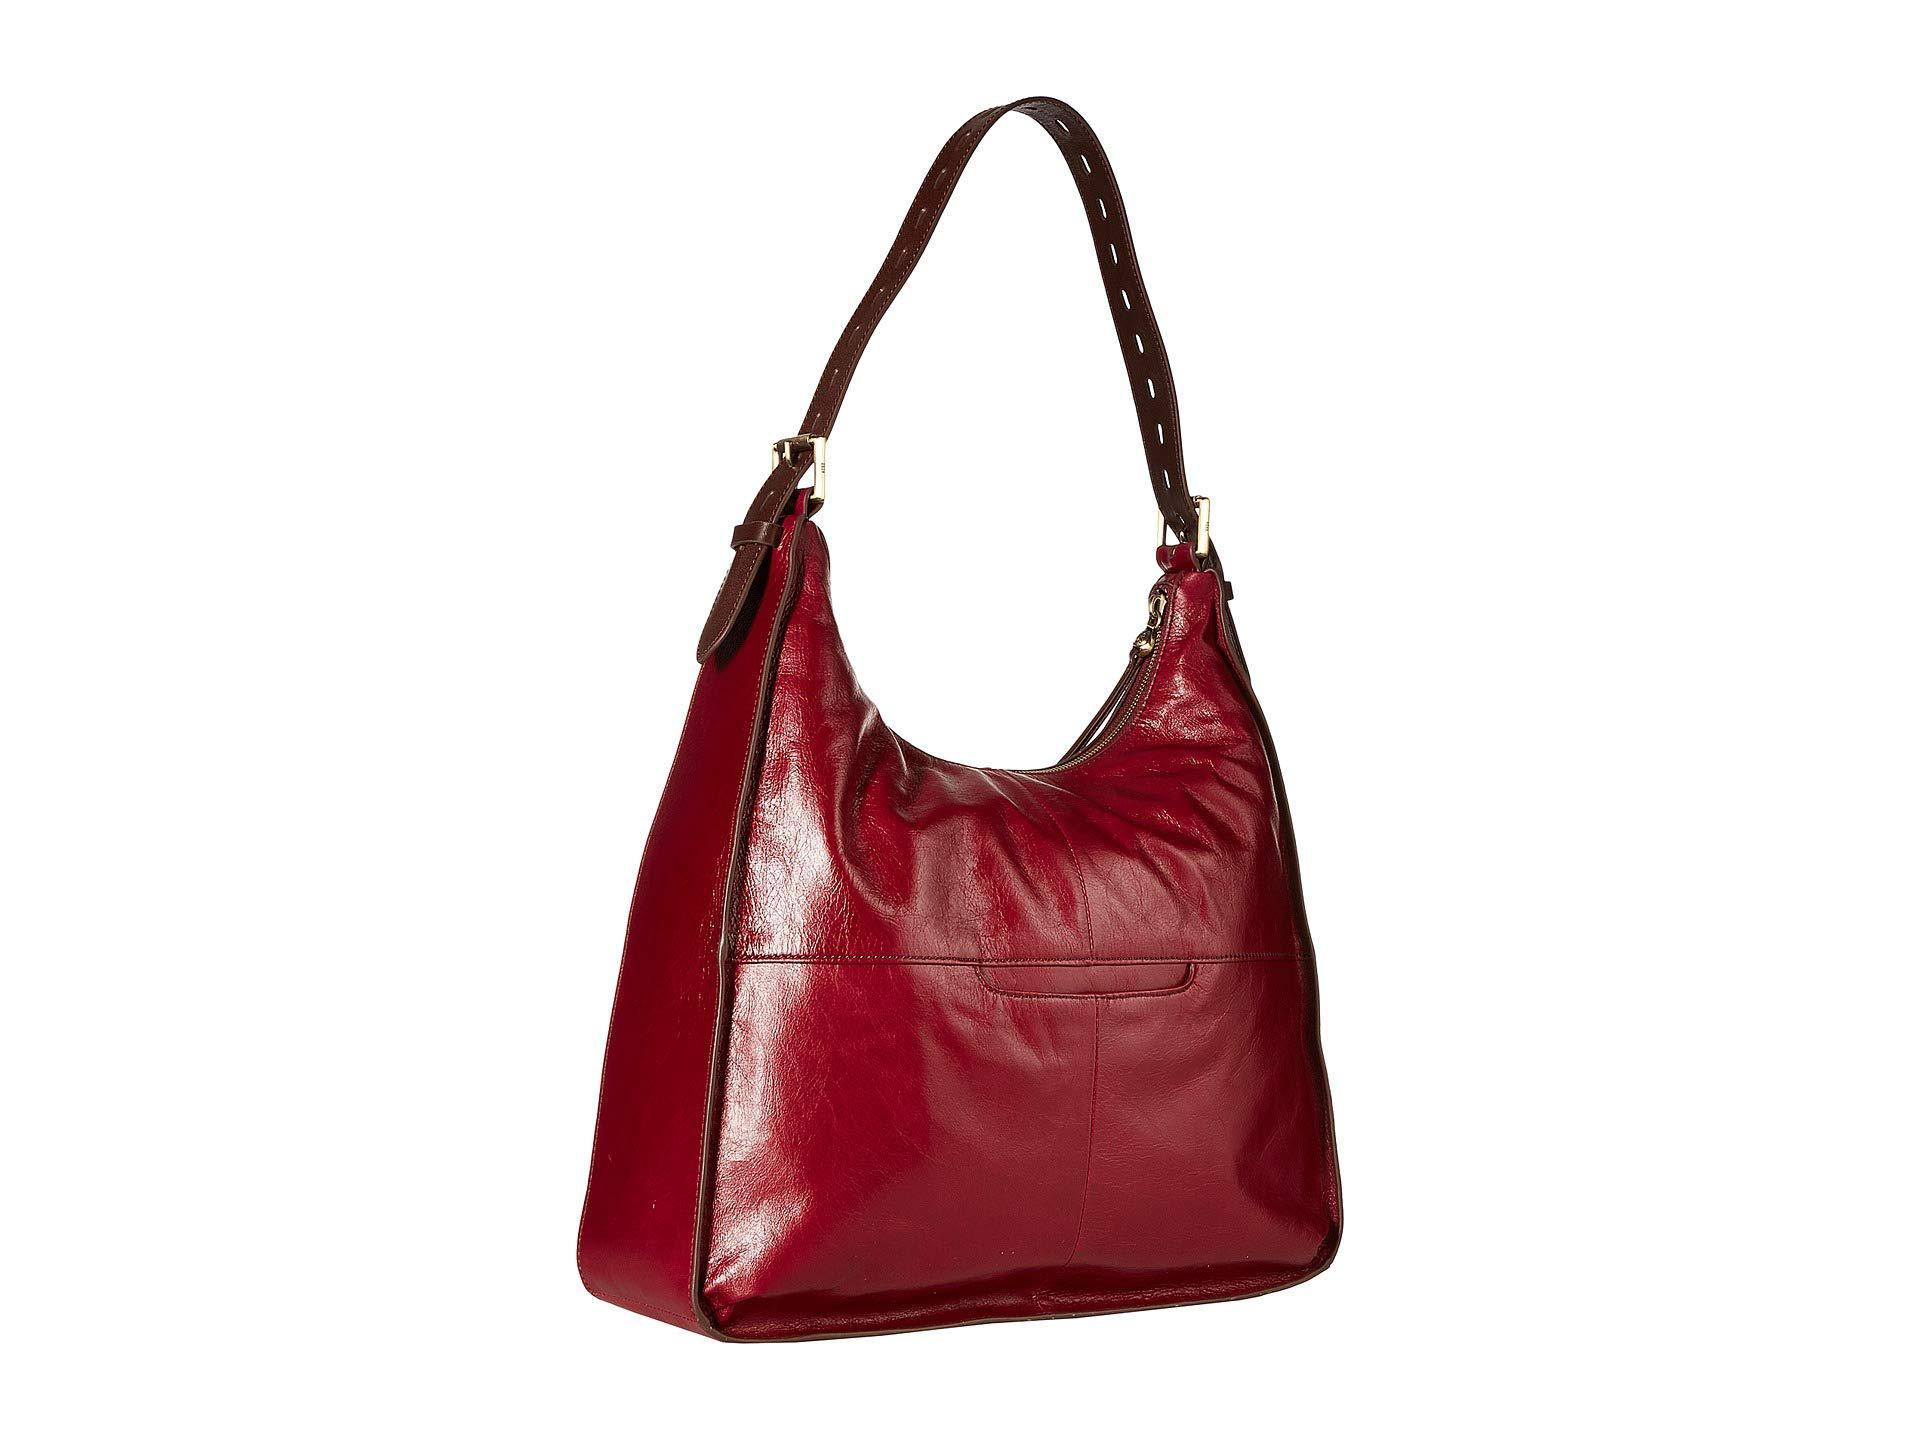 2b89e94bf58a Lyst - Hobo Marley (cameo) Handbags in Red